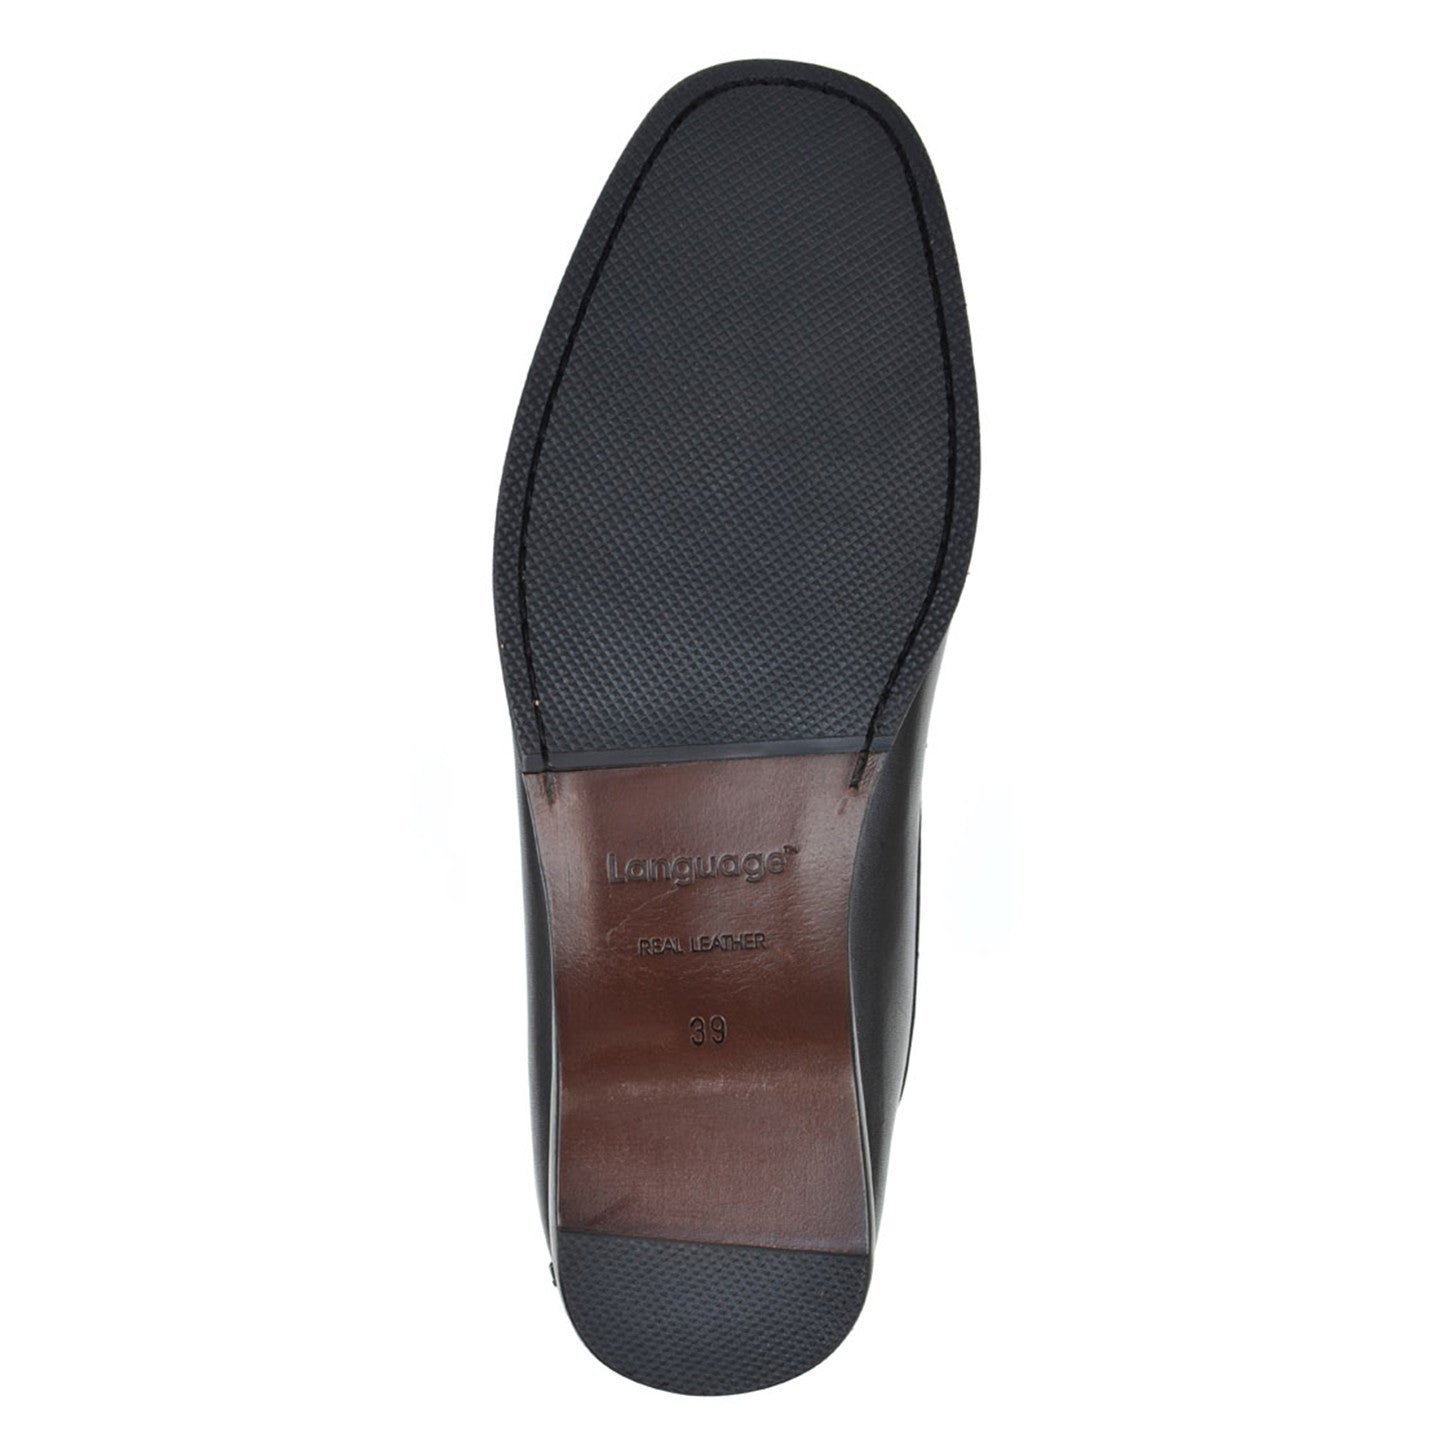 LM171 - Language Fissure Men's Formal Black Moccasins